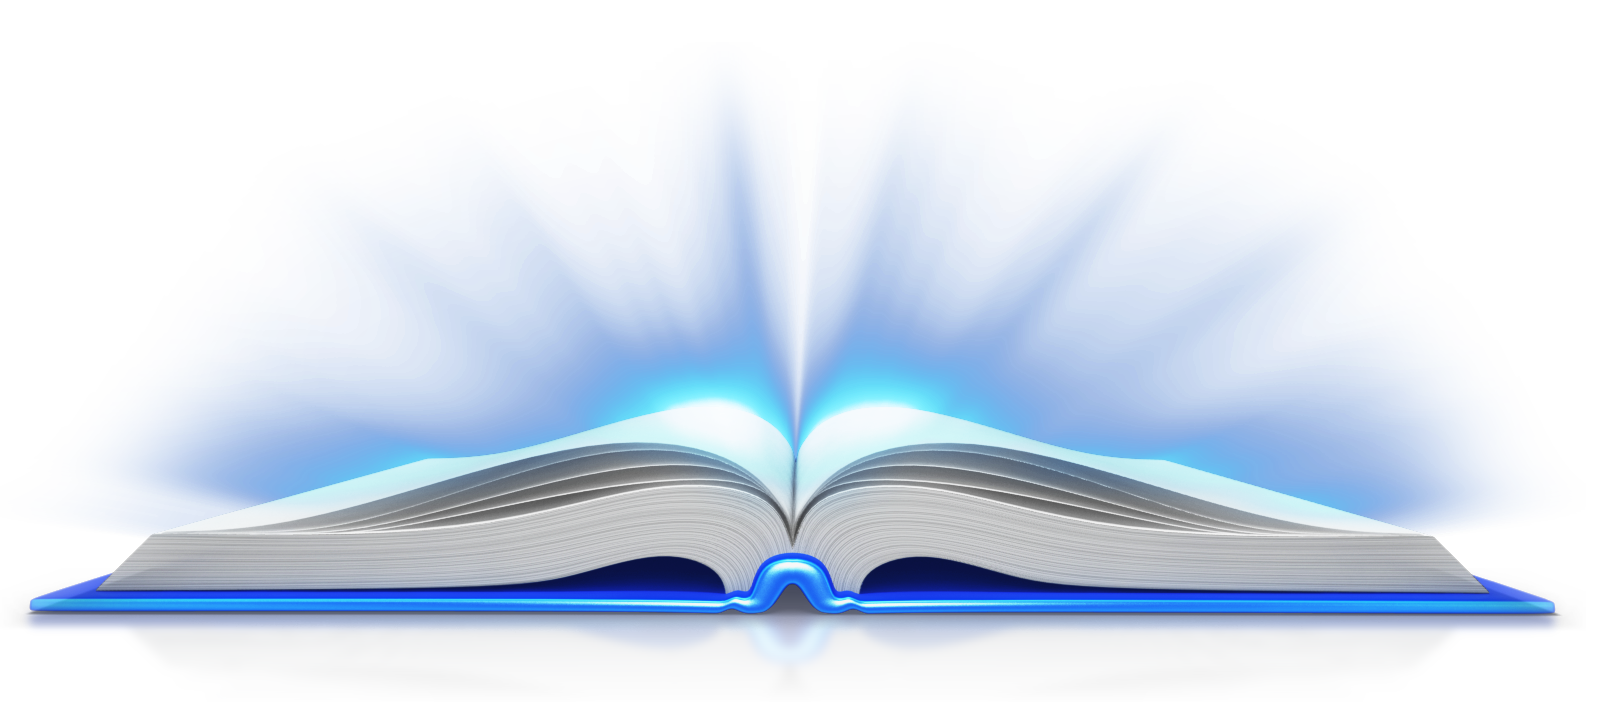 Open book clip art transparent background. Png images free download